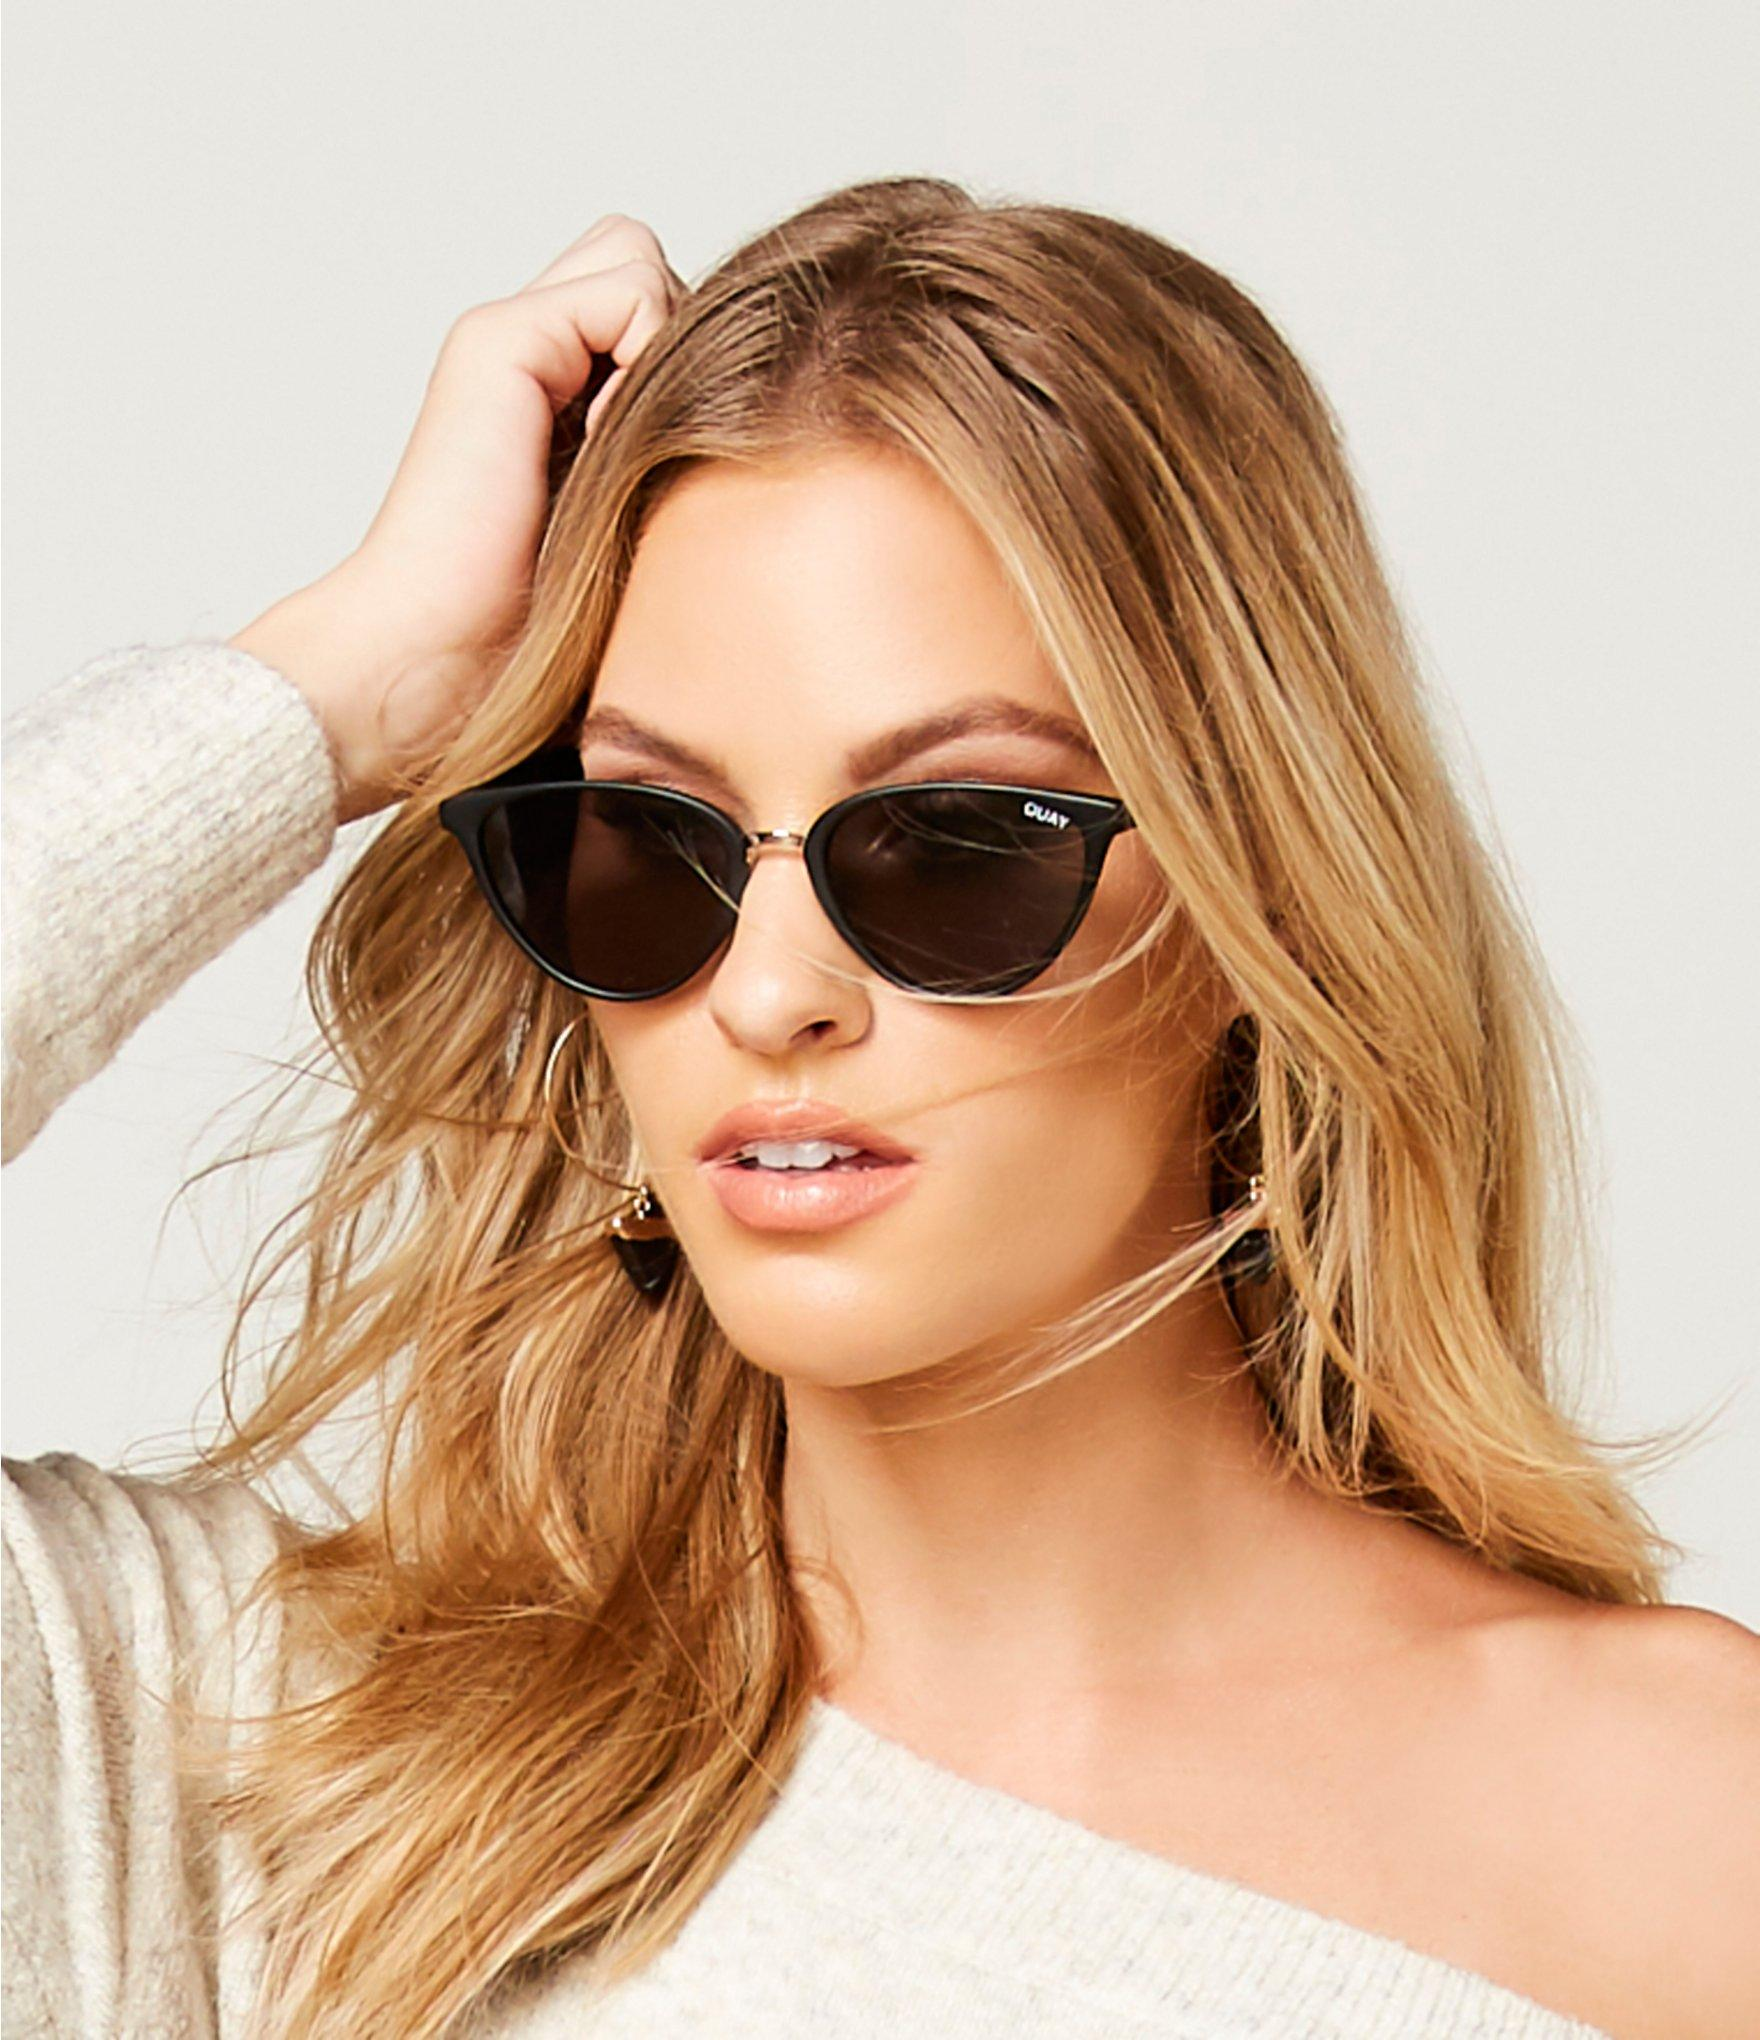 e27facf0506 Quay Rumors Round Cat-eye Sunglasses in Black - Lyst